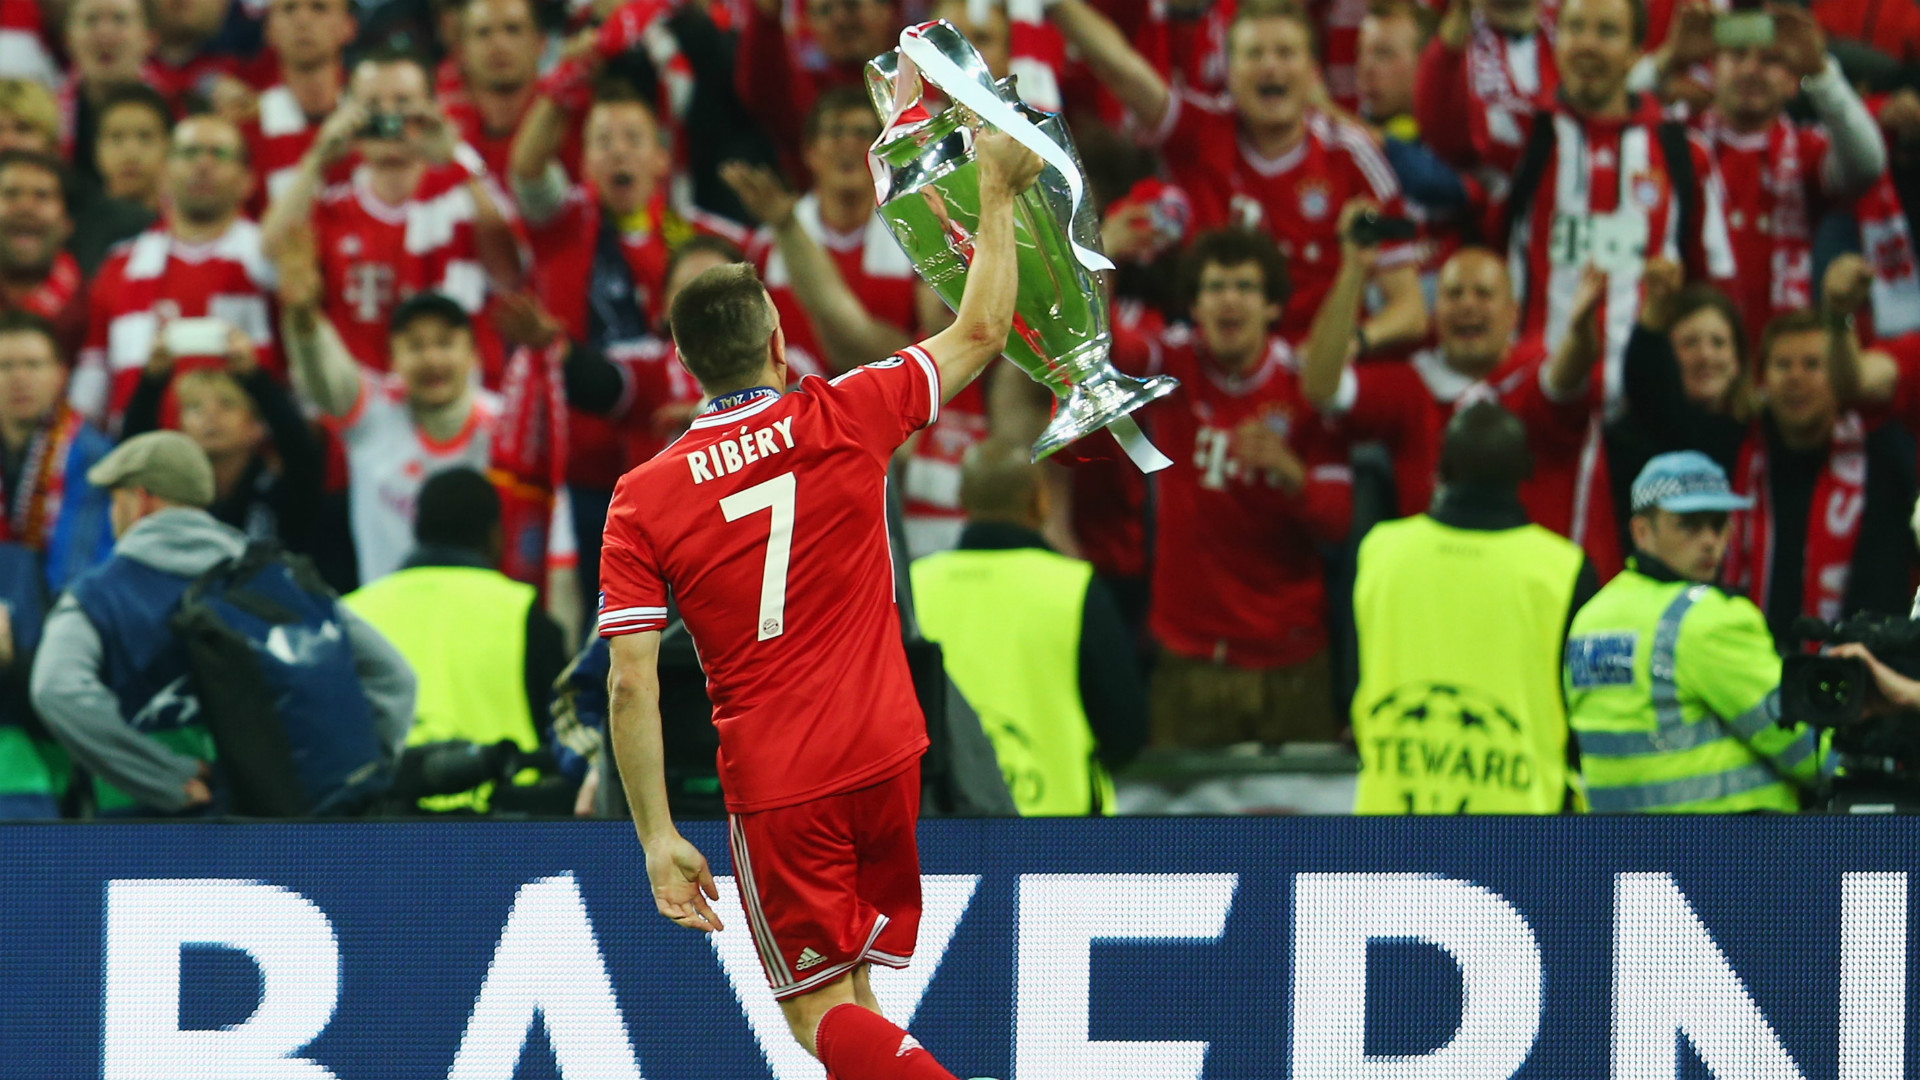 Franck Ribery Champions League trophy 25052013